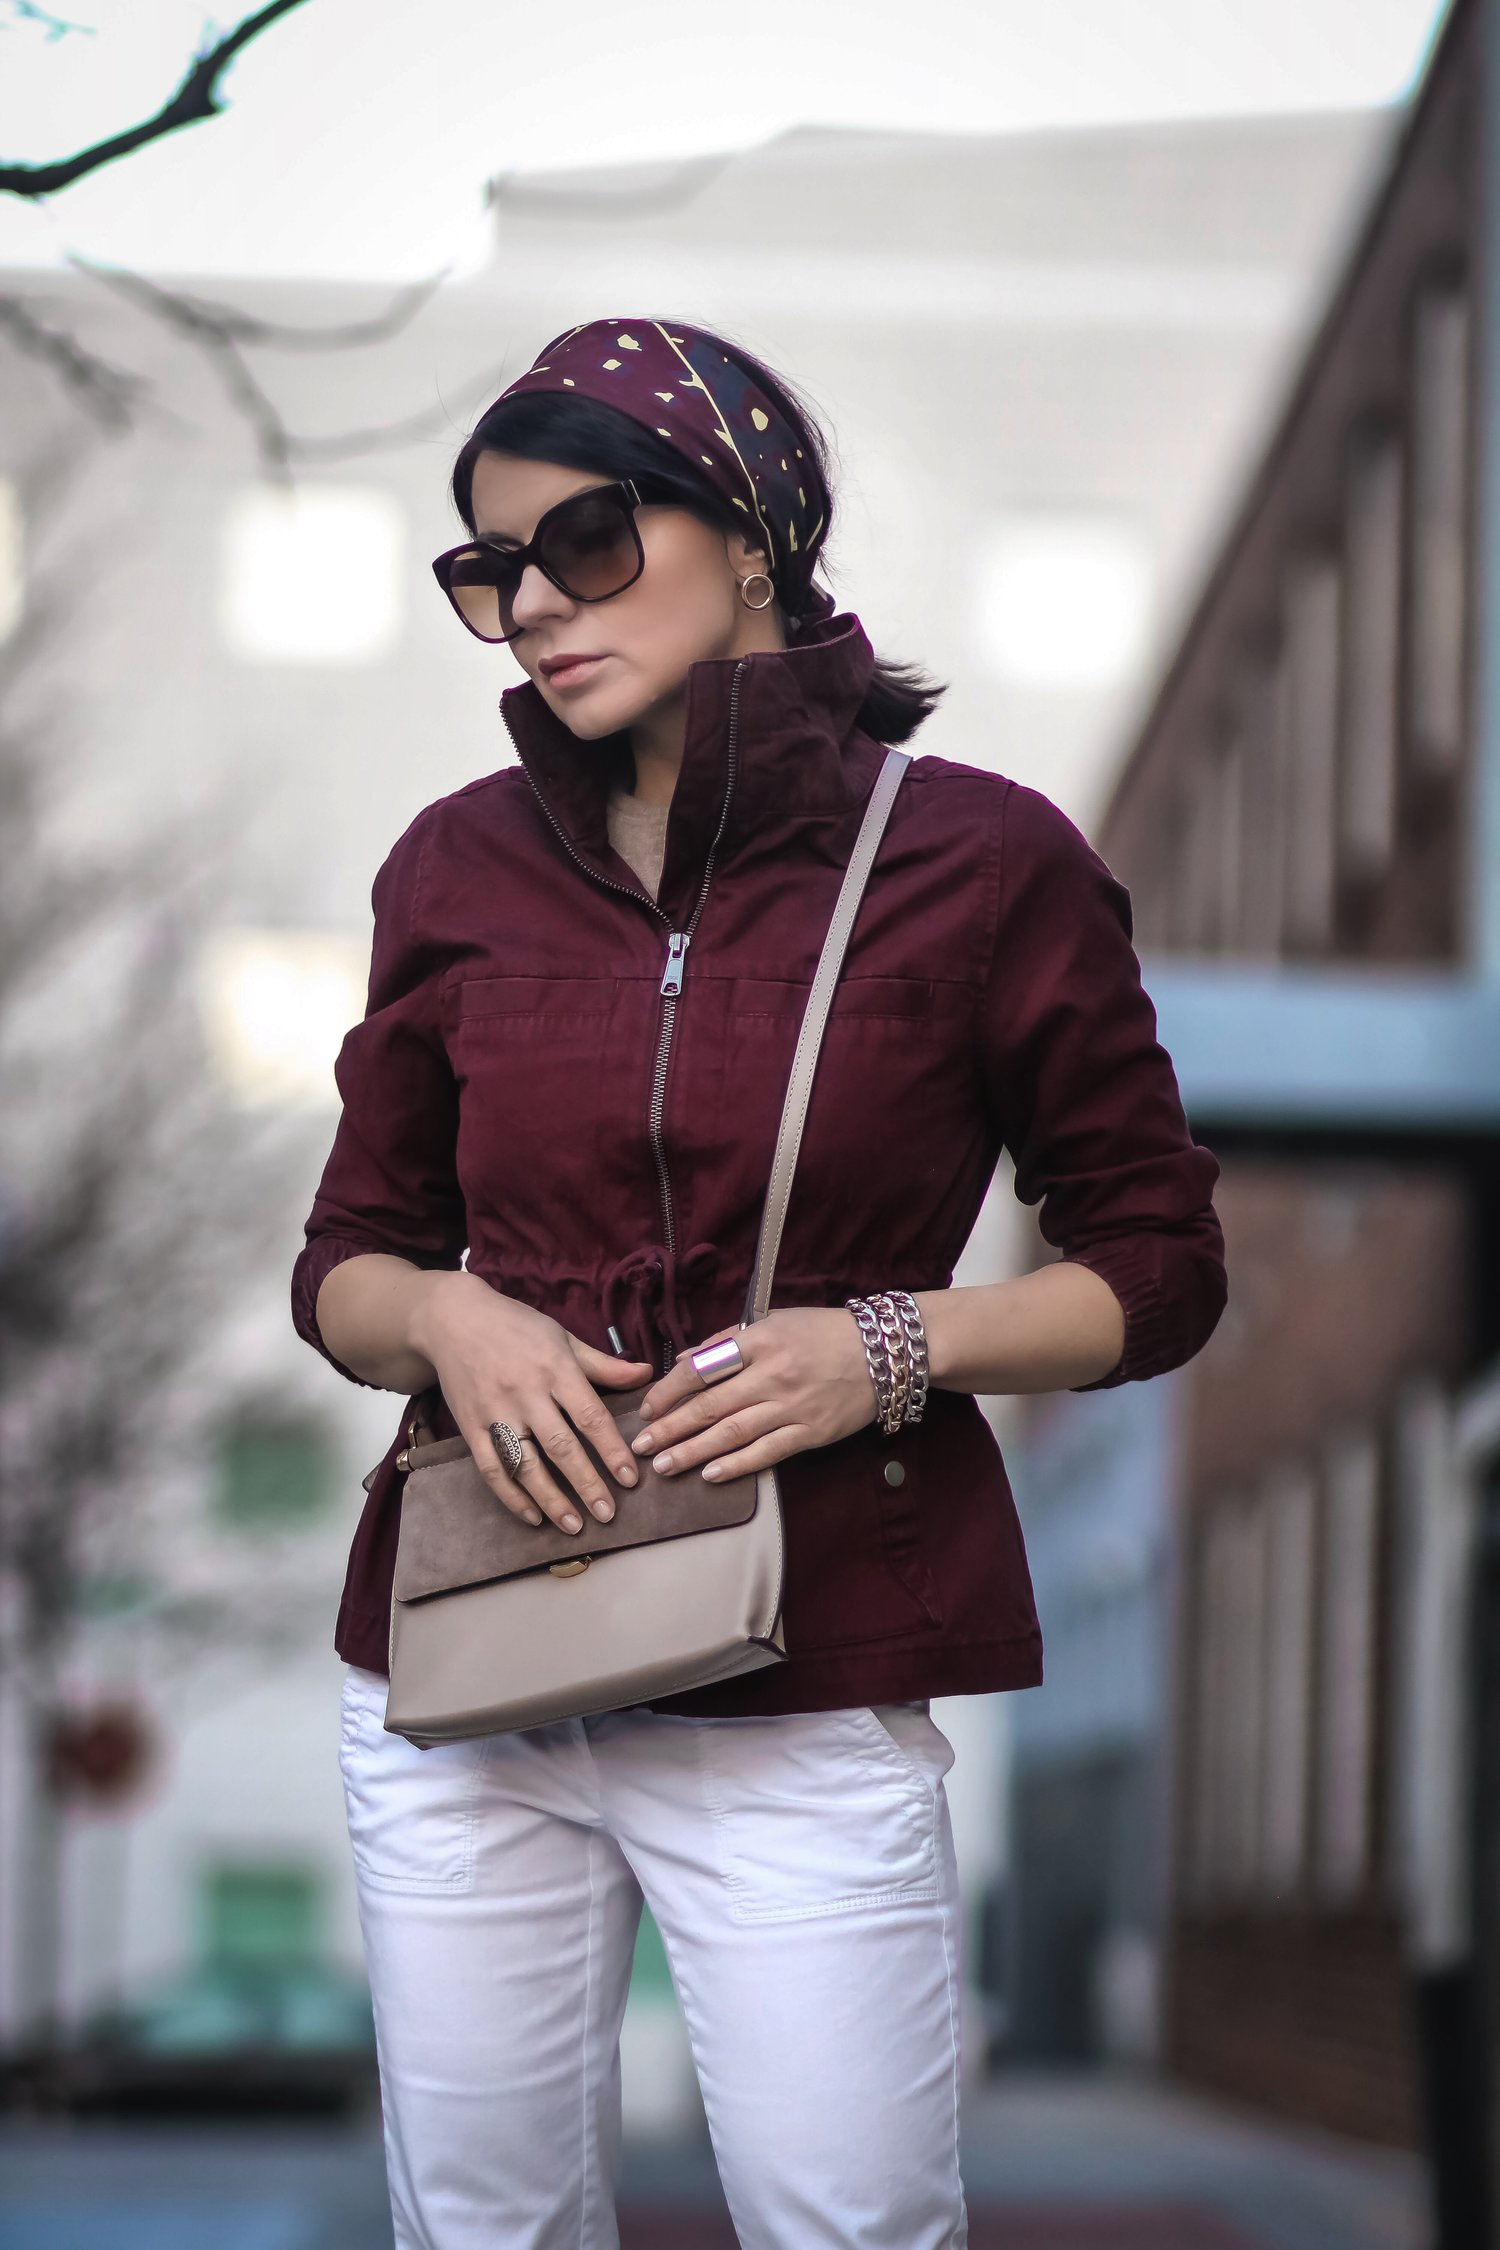 Isabel-Alexander-Old-Navy-burgundy-utility-jacket-white-denim-outfit